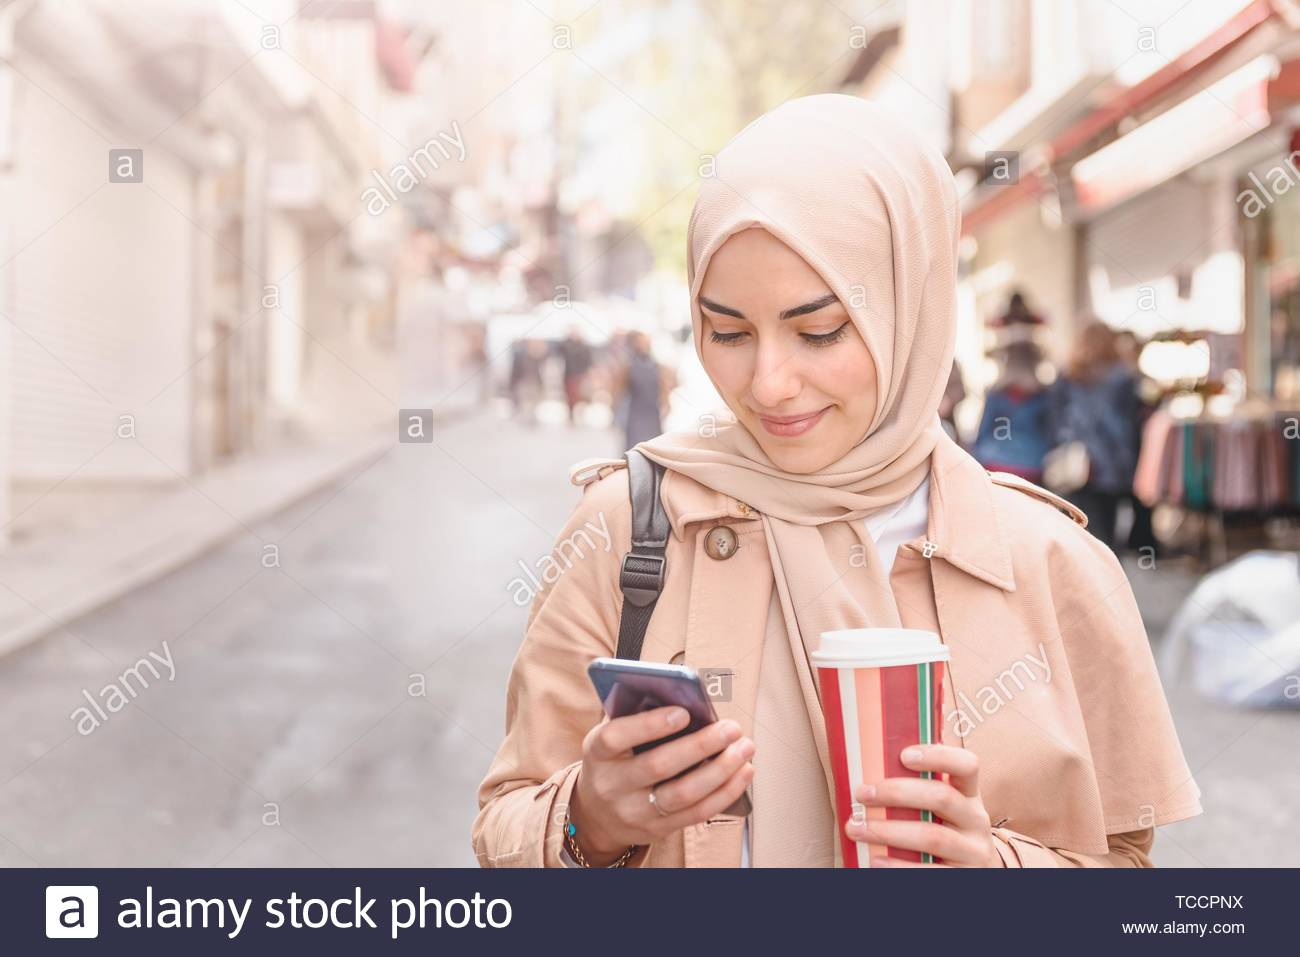 Beautiful Muslim woman in headscarf and fashionable modern trendy clothes with takeaway coffee uses smart phone while walking. Modern Muslim women Stock Photo